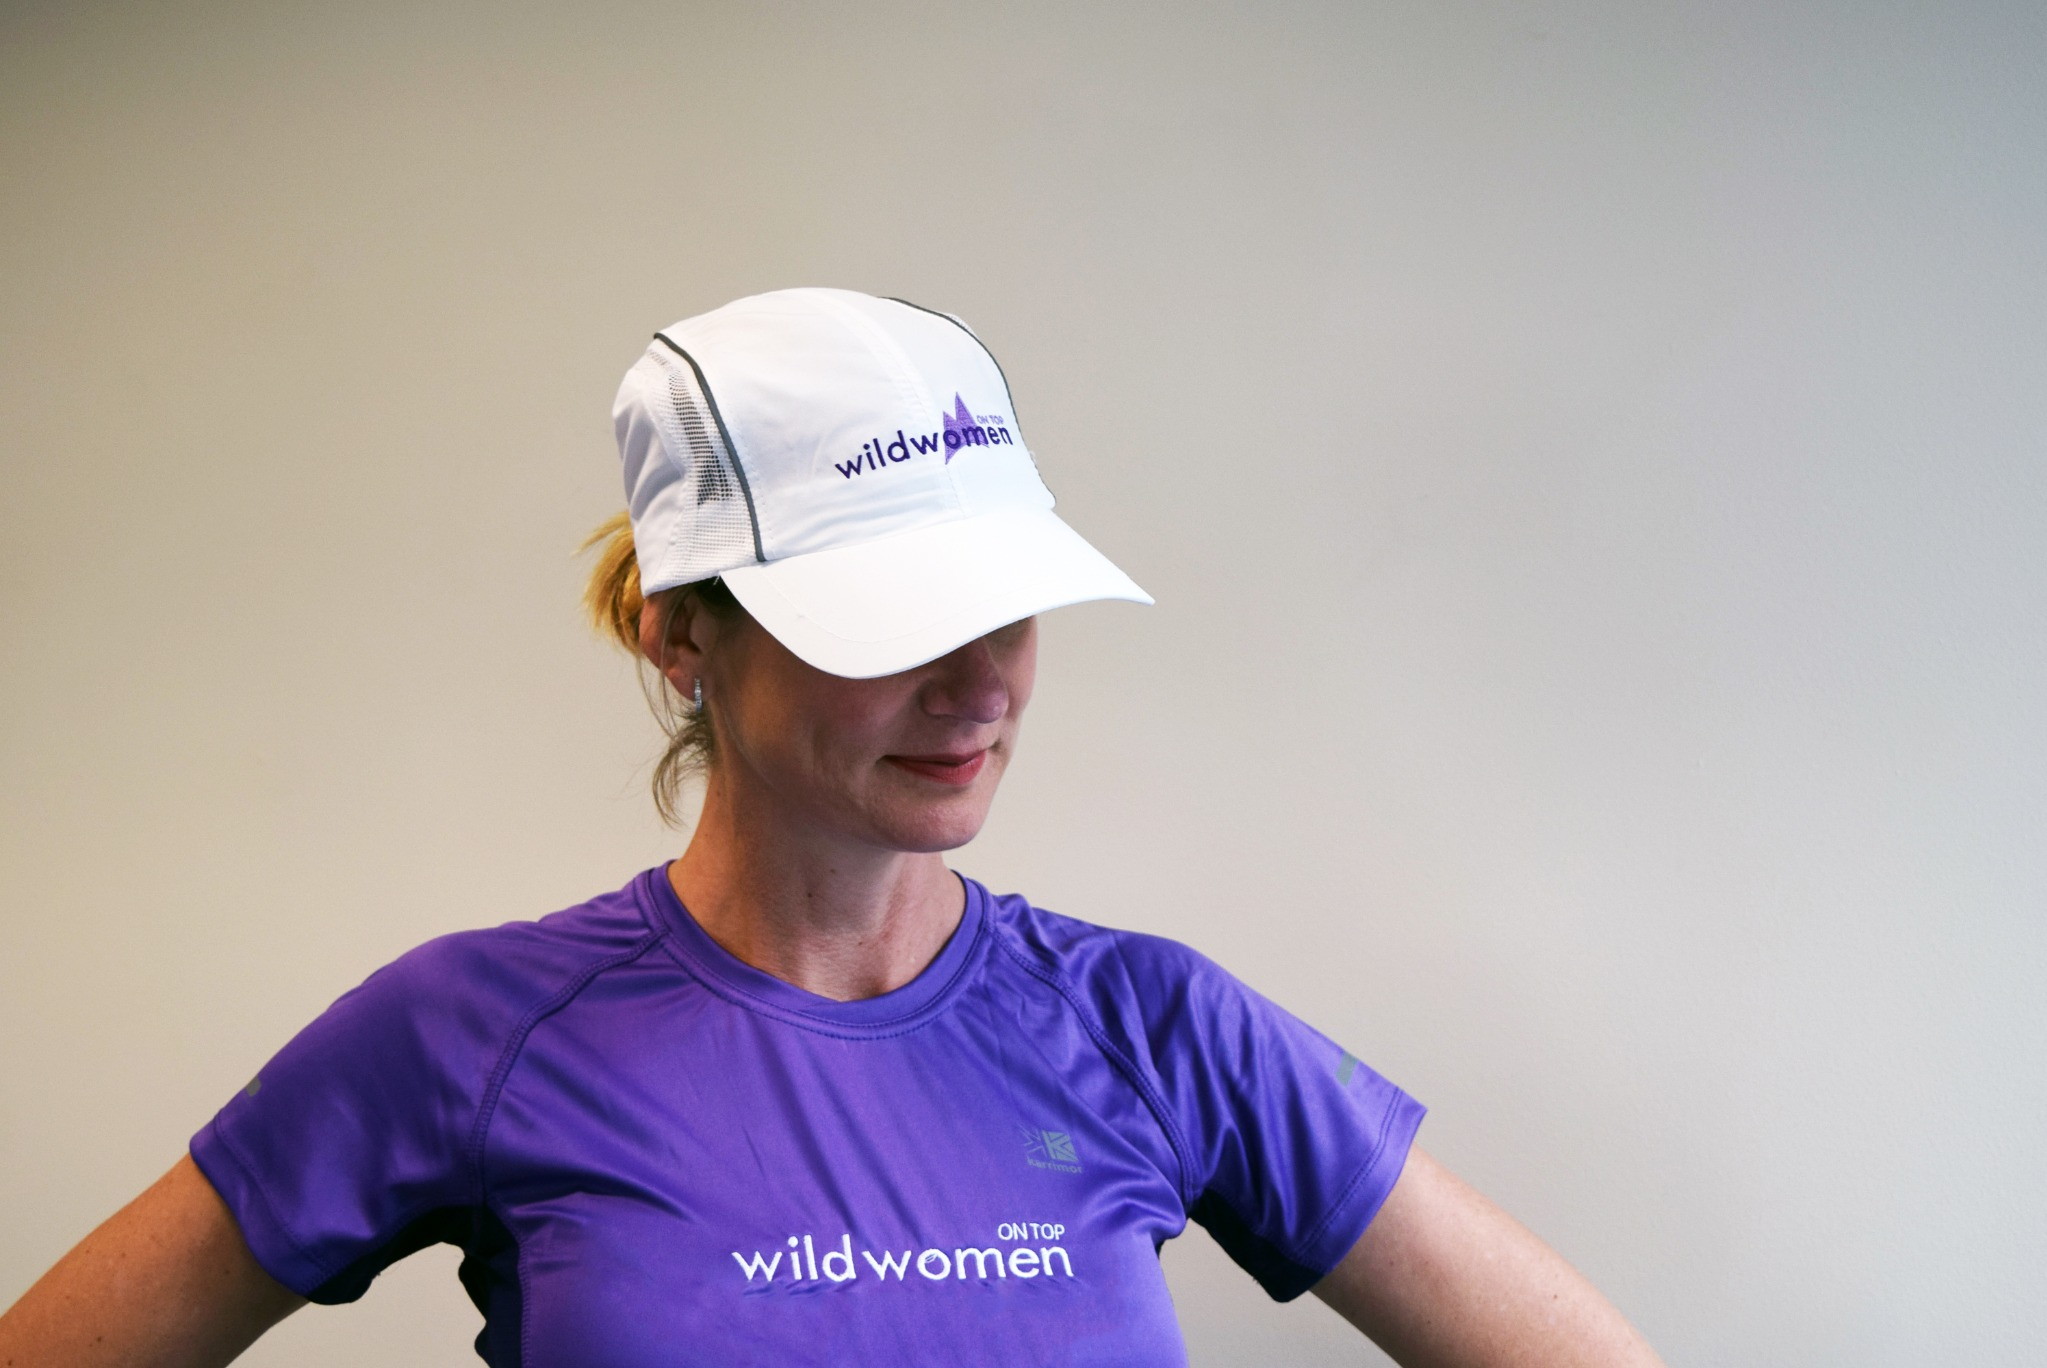 Wild Women On Top Cap